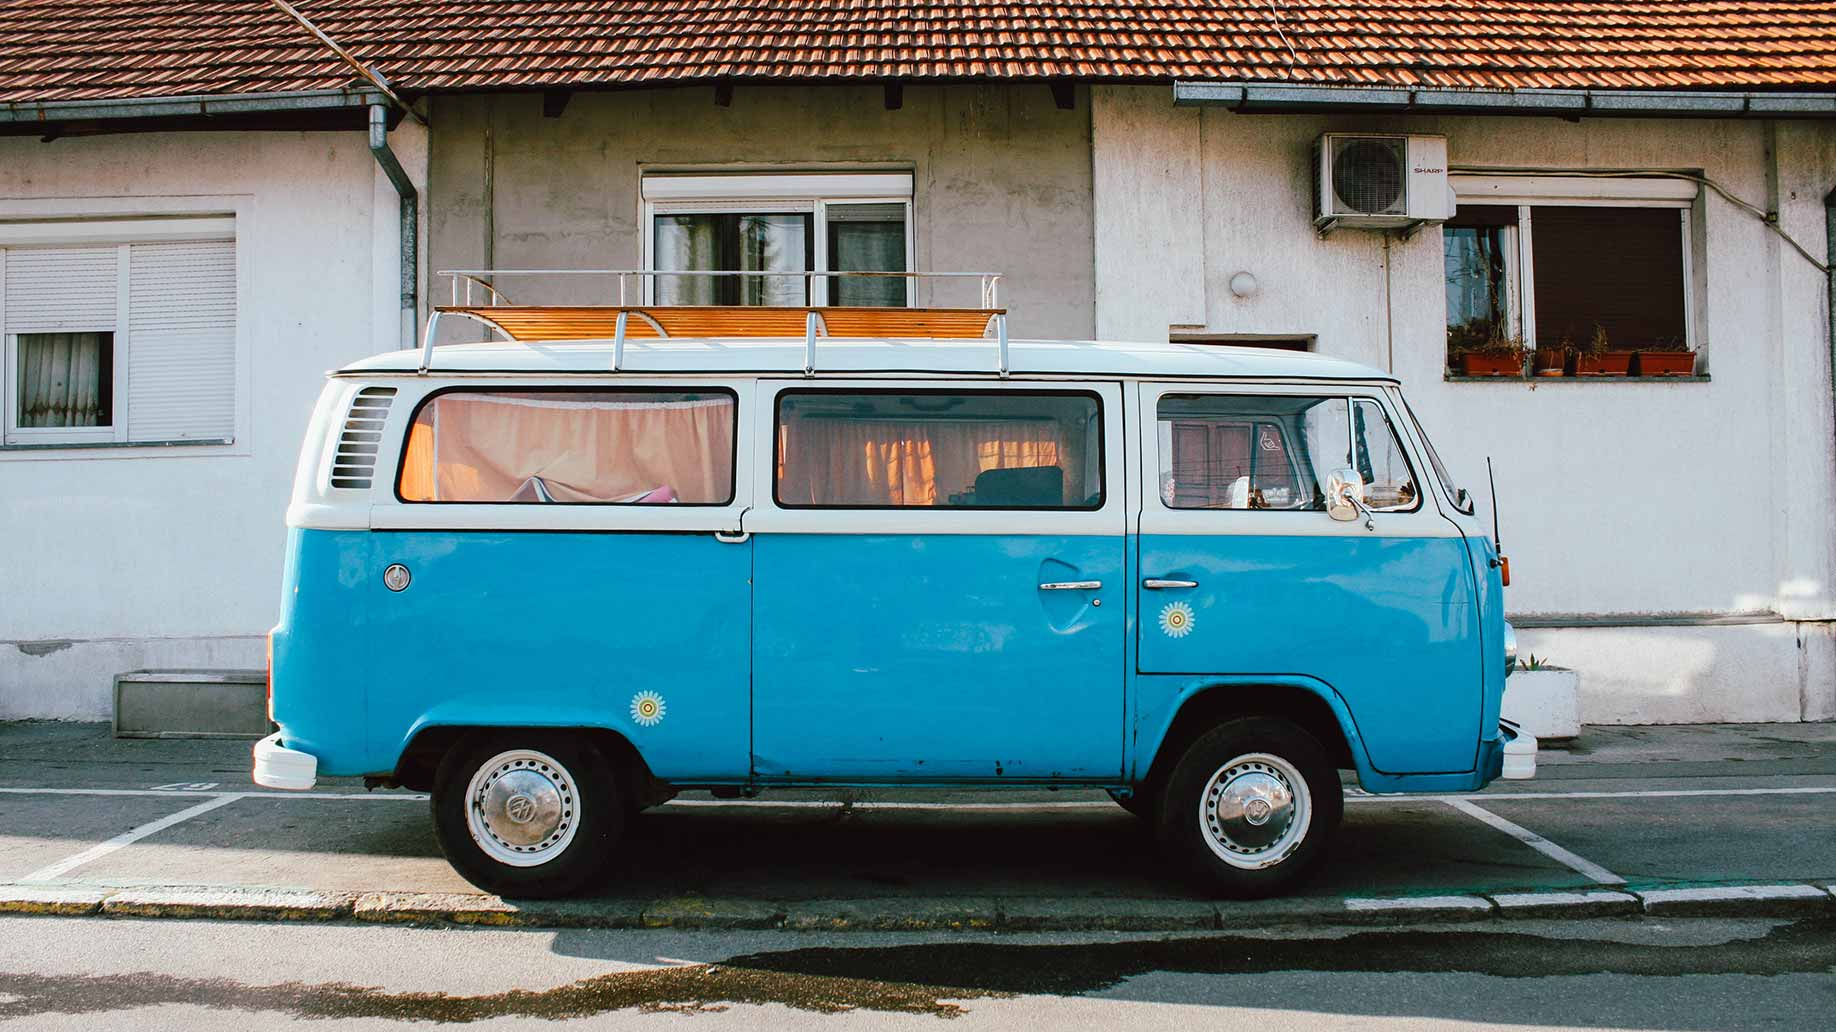 blue and white volkswagen class b motorhome parked on street